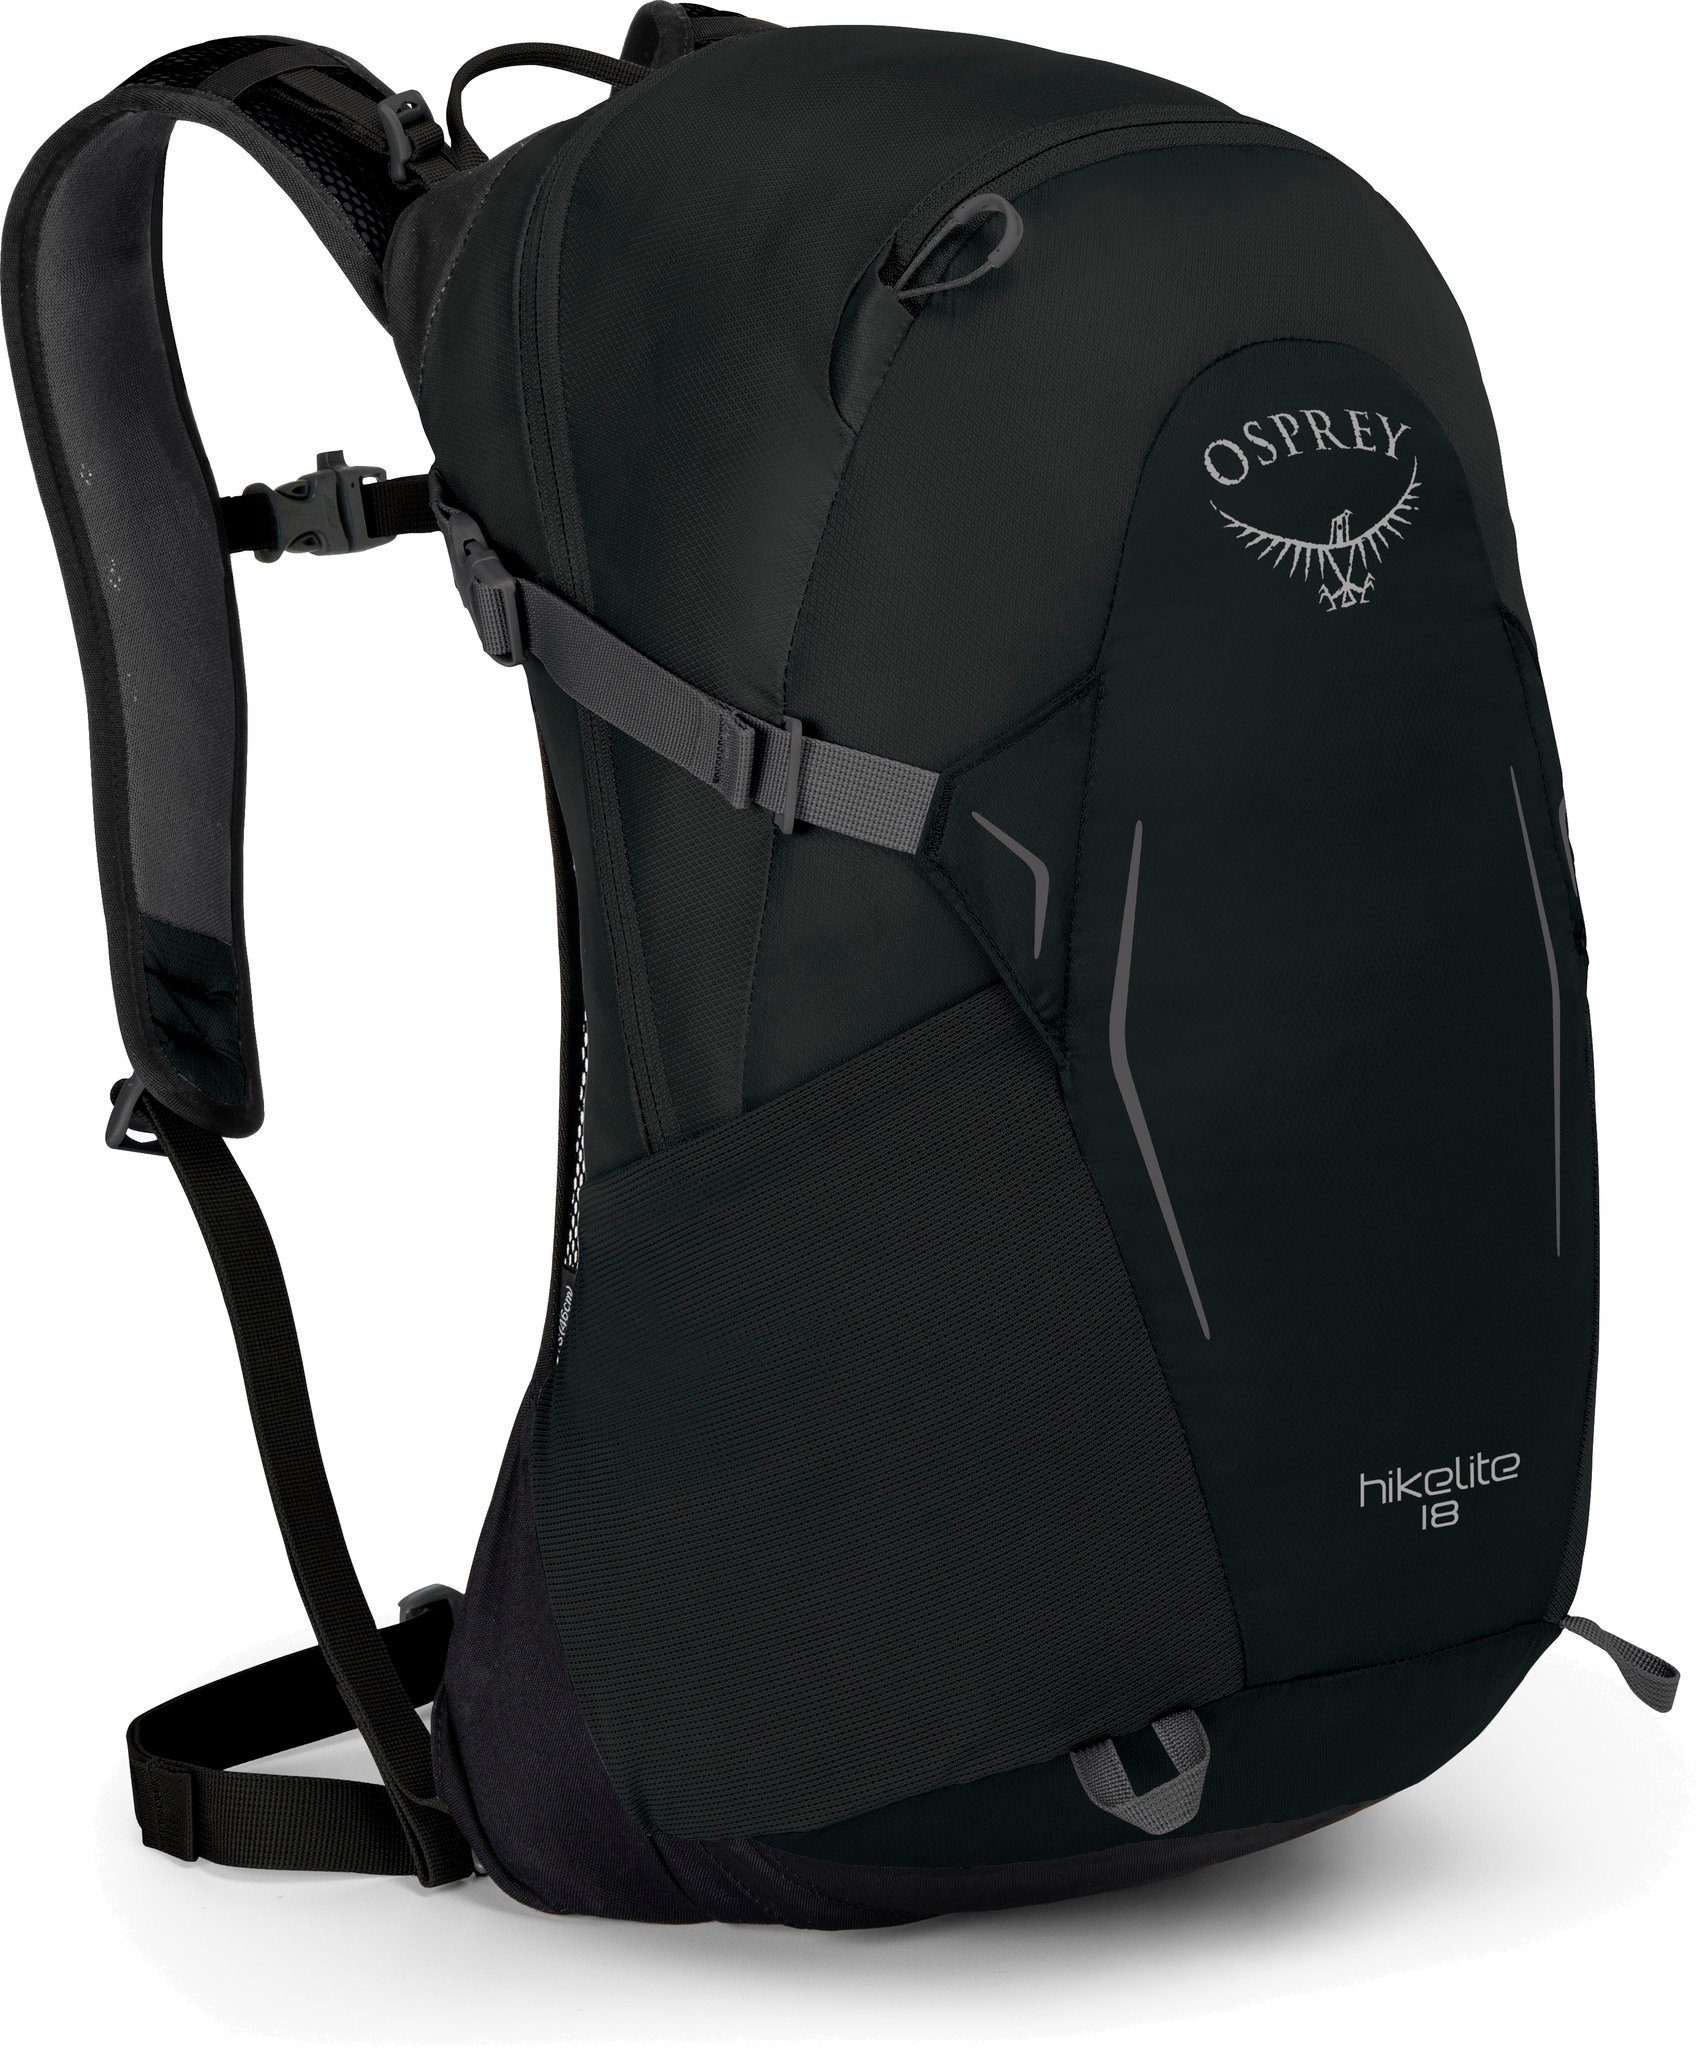 Osprey Wanderrucksack »Hikelite 18 Backpack«